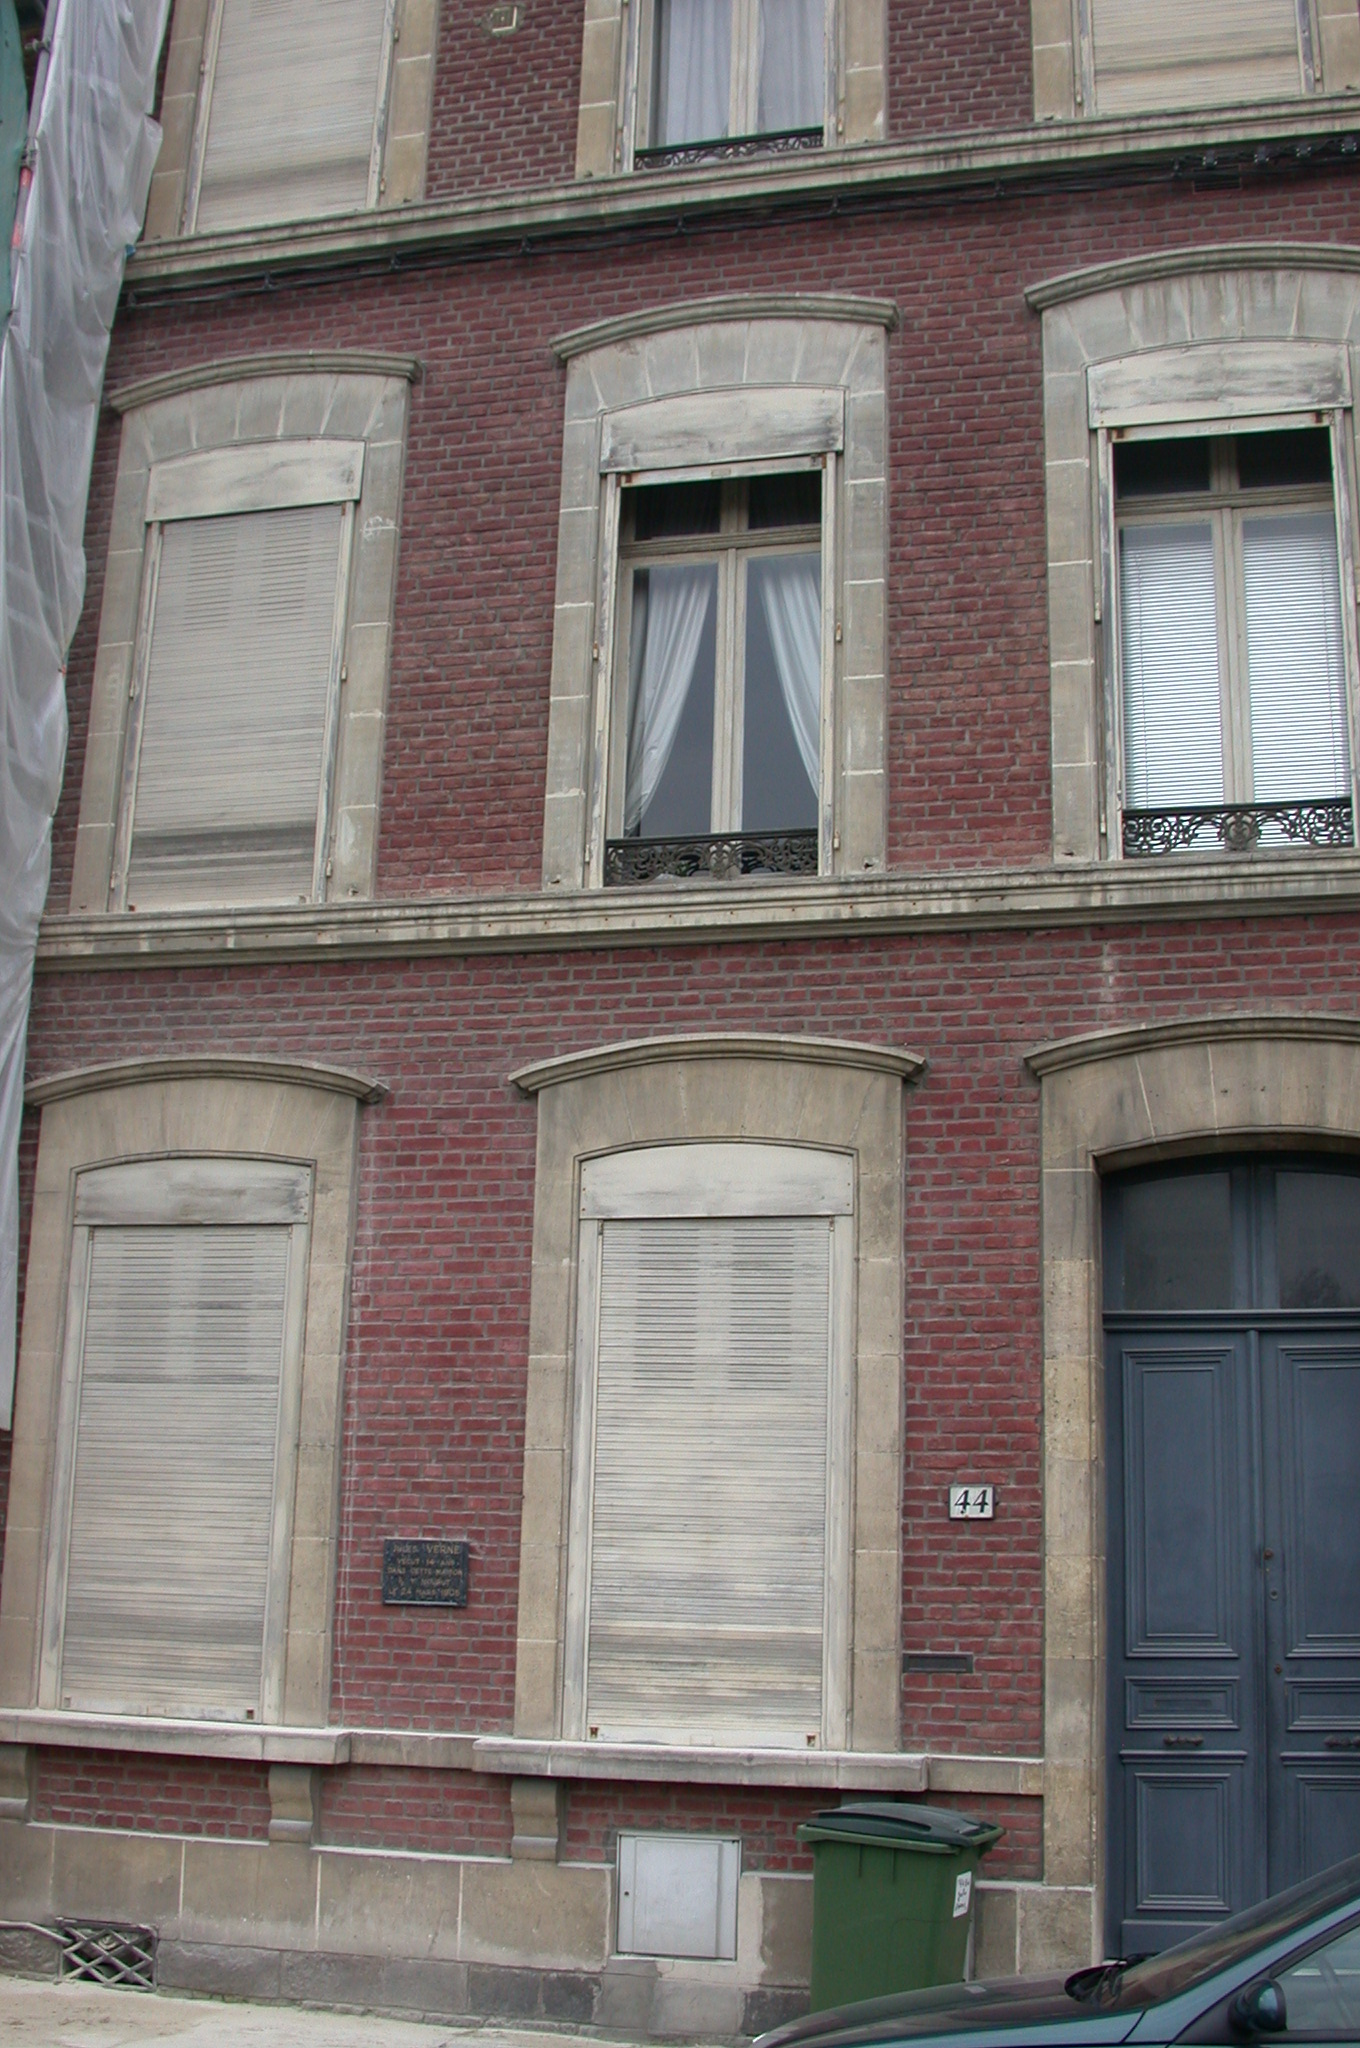 DSCN0141.jpg - We pass 44, Boulevard Jules Verne, the home where Jules passed away 100 years ago this very day.